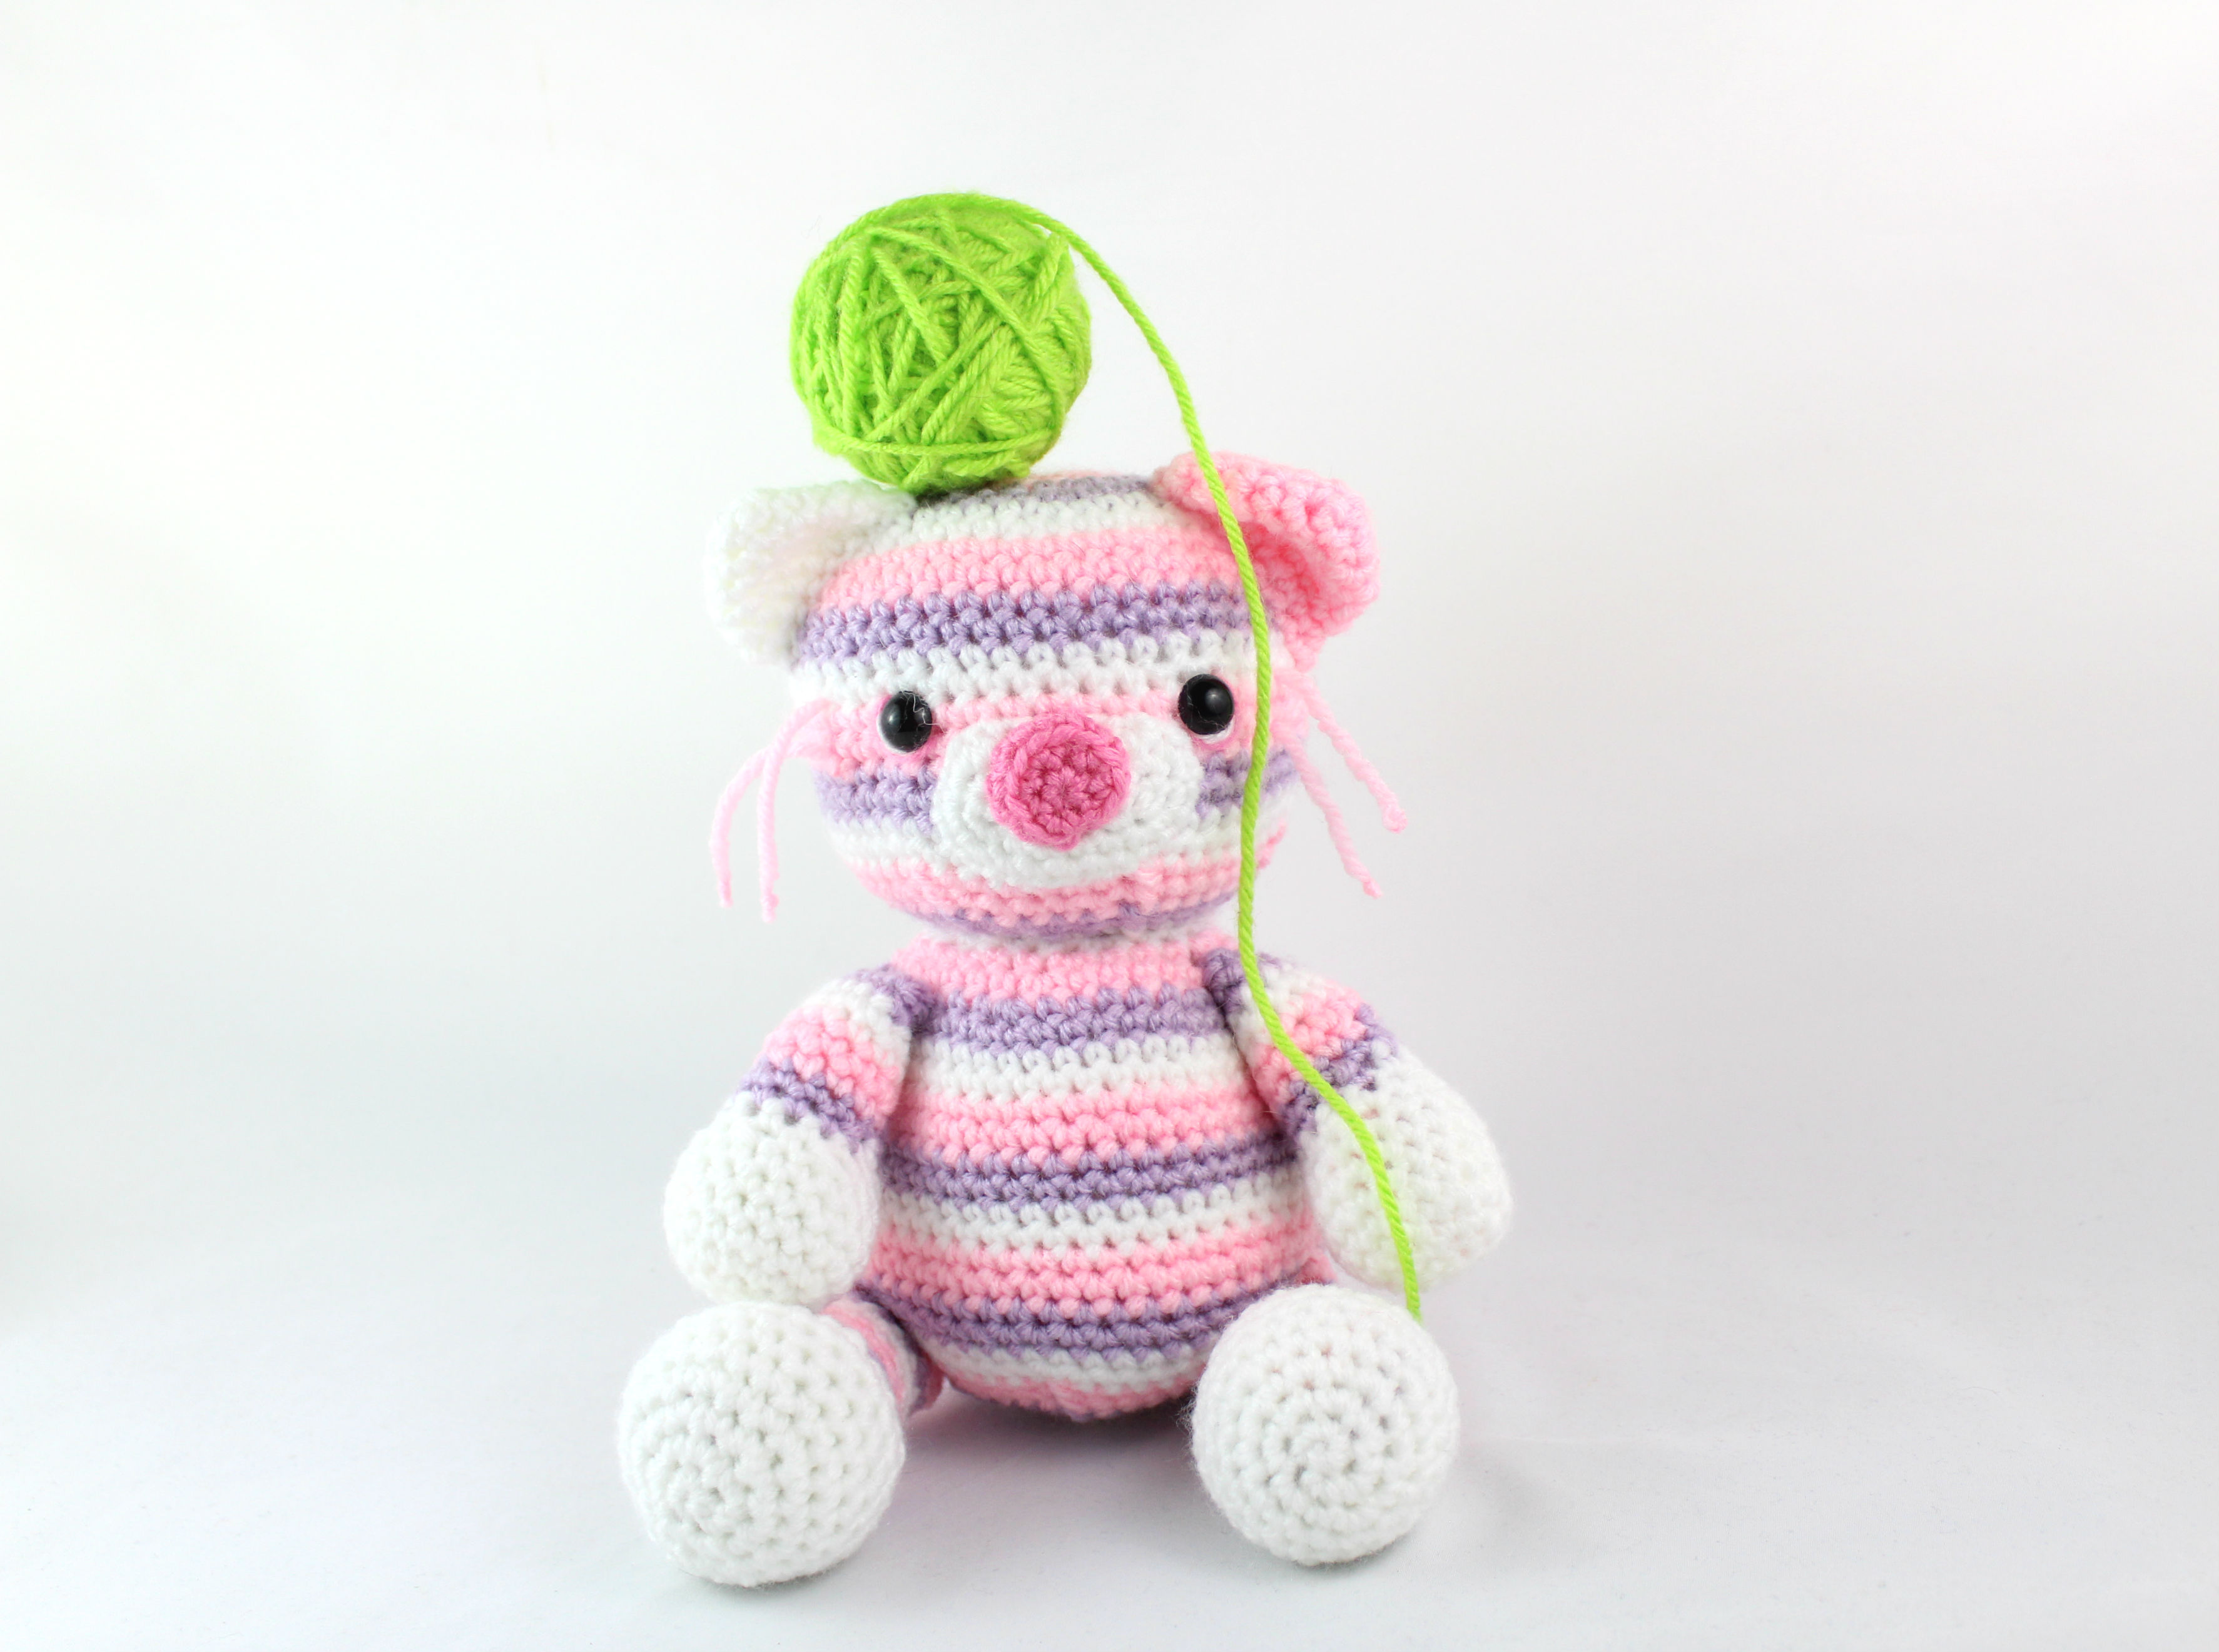 Laid Back Cat Crochet Pattern Is Adorable | The WHOot | 2641x3547